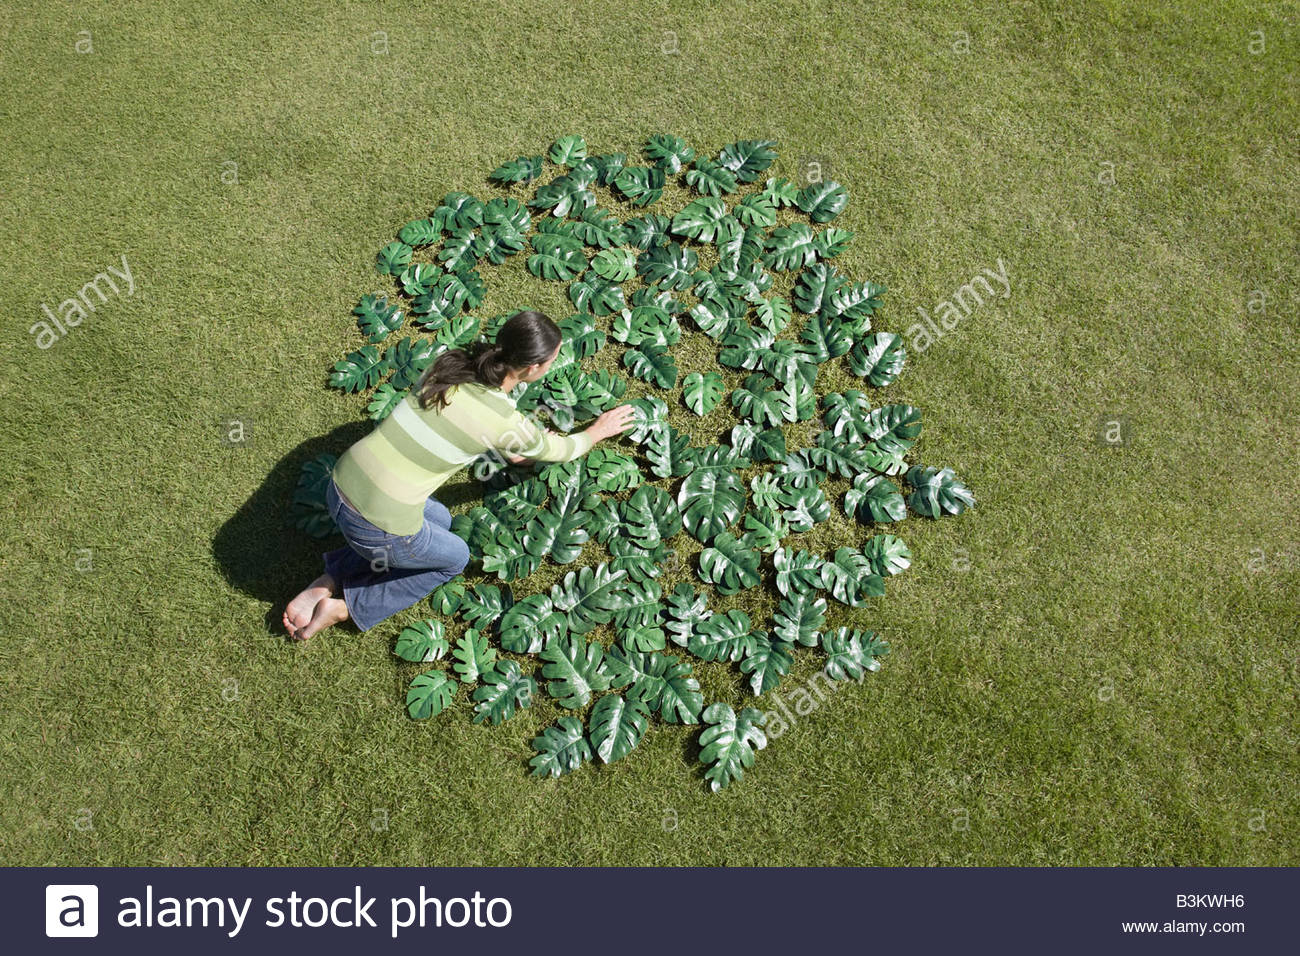 Woman placing green leaves in circle - Stock Image